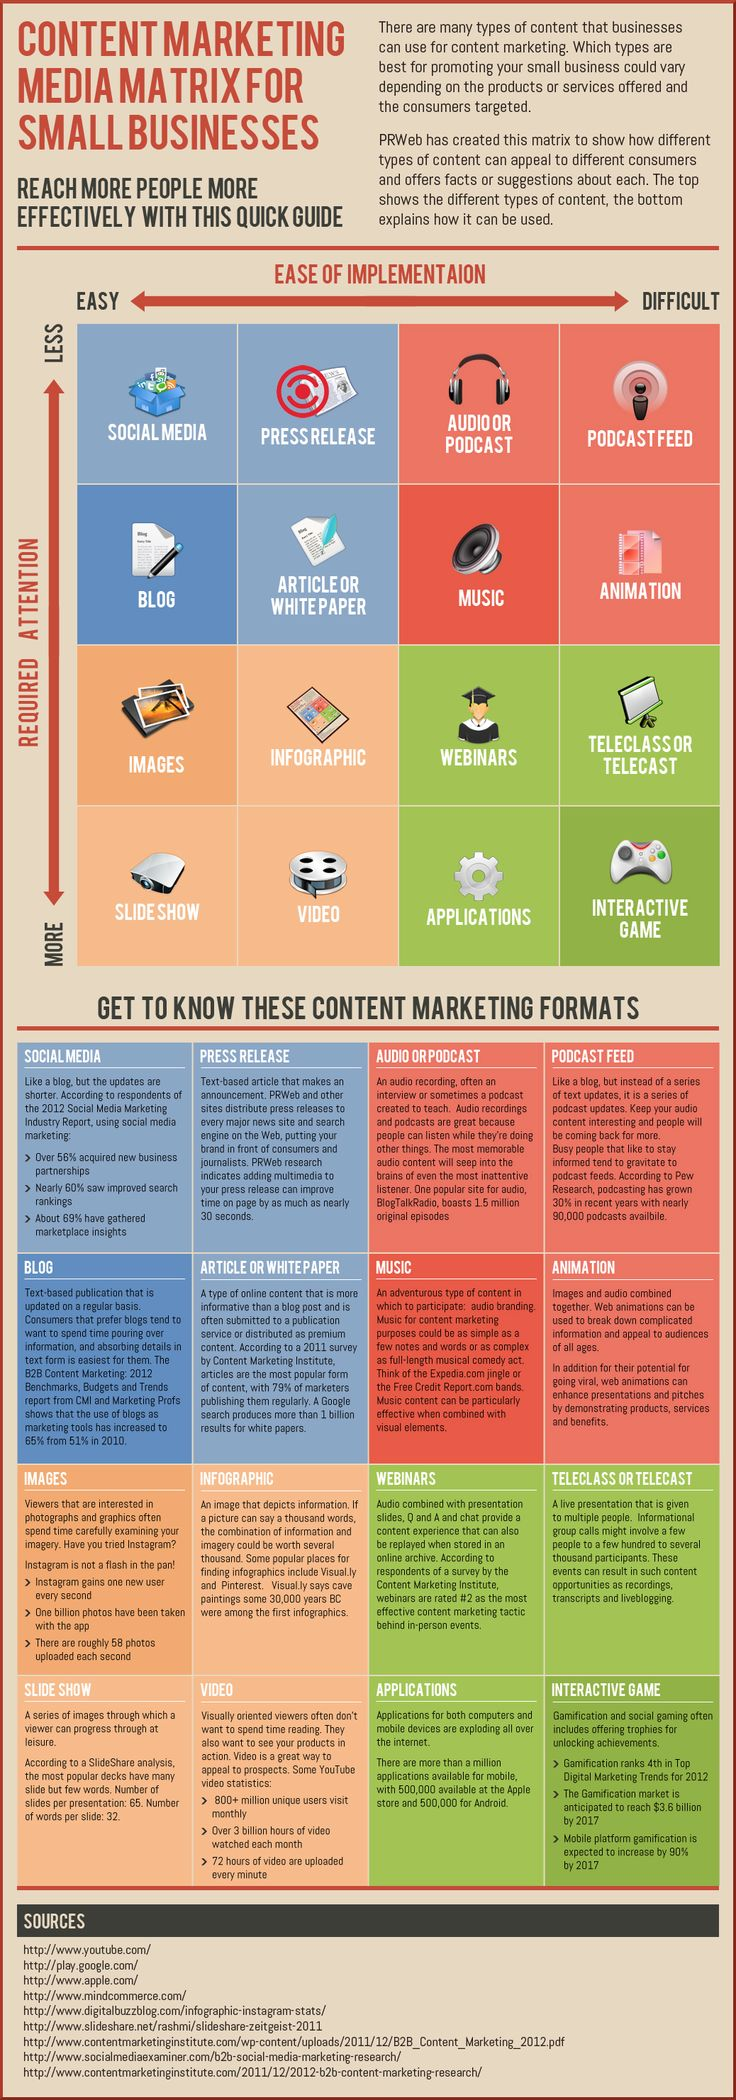 Content Marketing for Recruiters on Social Media [INFOGRAPHIC]